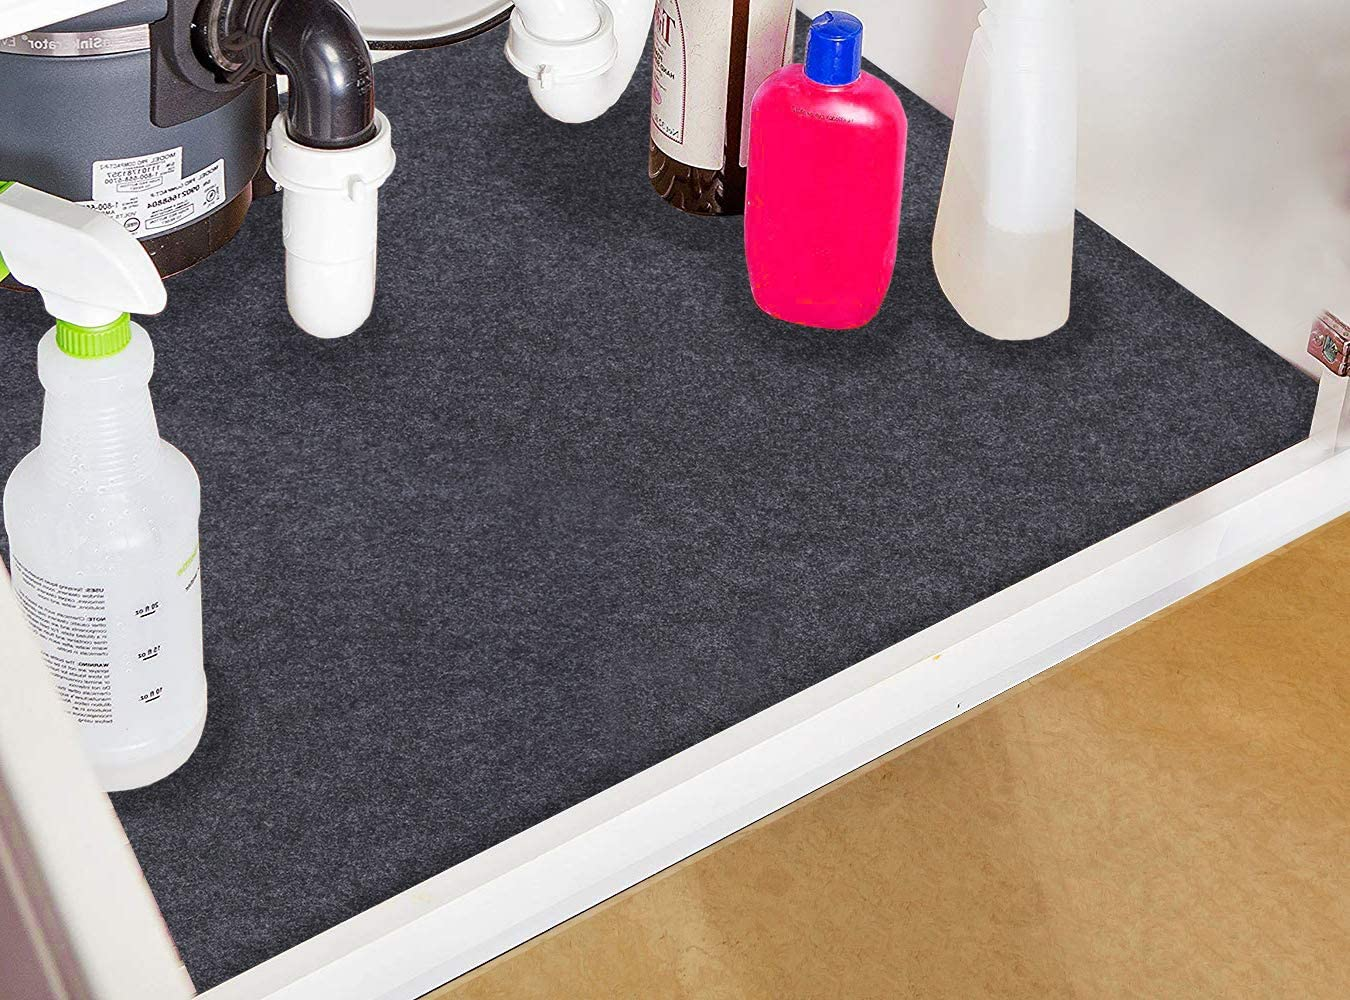 """Under The Sink Mat,Cabinet Mat – Absorbent/Waterproof – Protects Cabinets, Premium Shelf Liner, Contains Liquids,Washable(24in x 36in) (24""""×36"""")"""